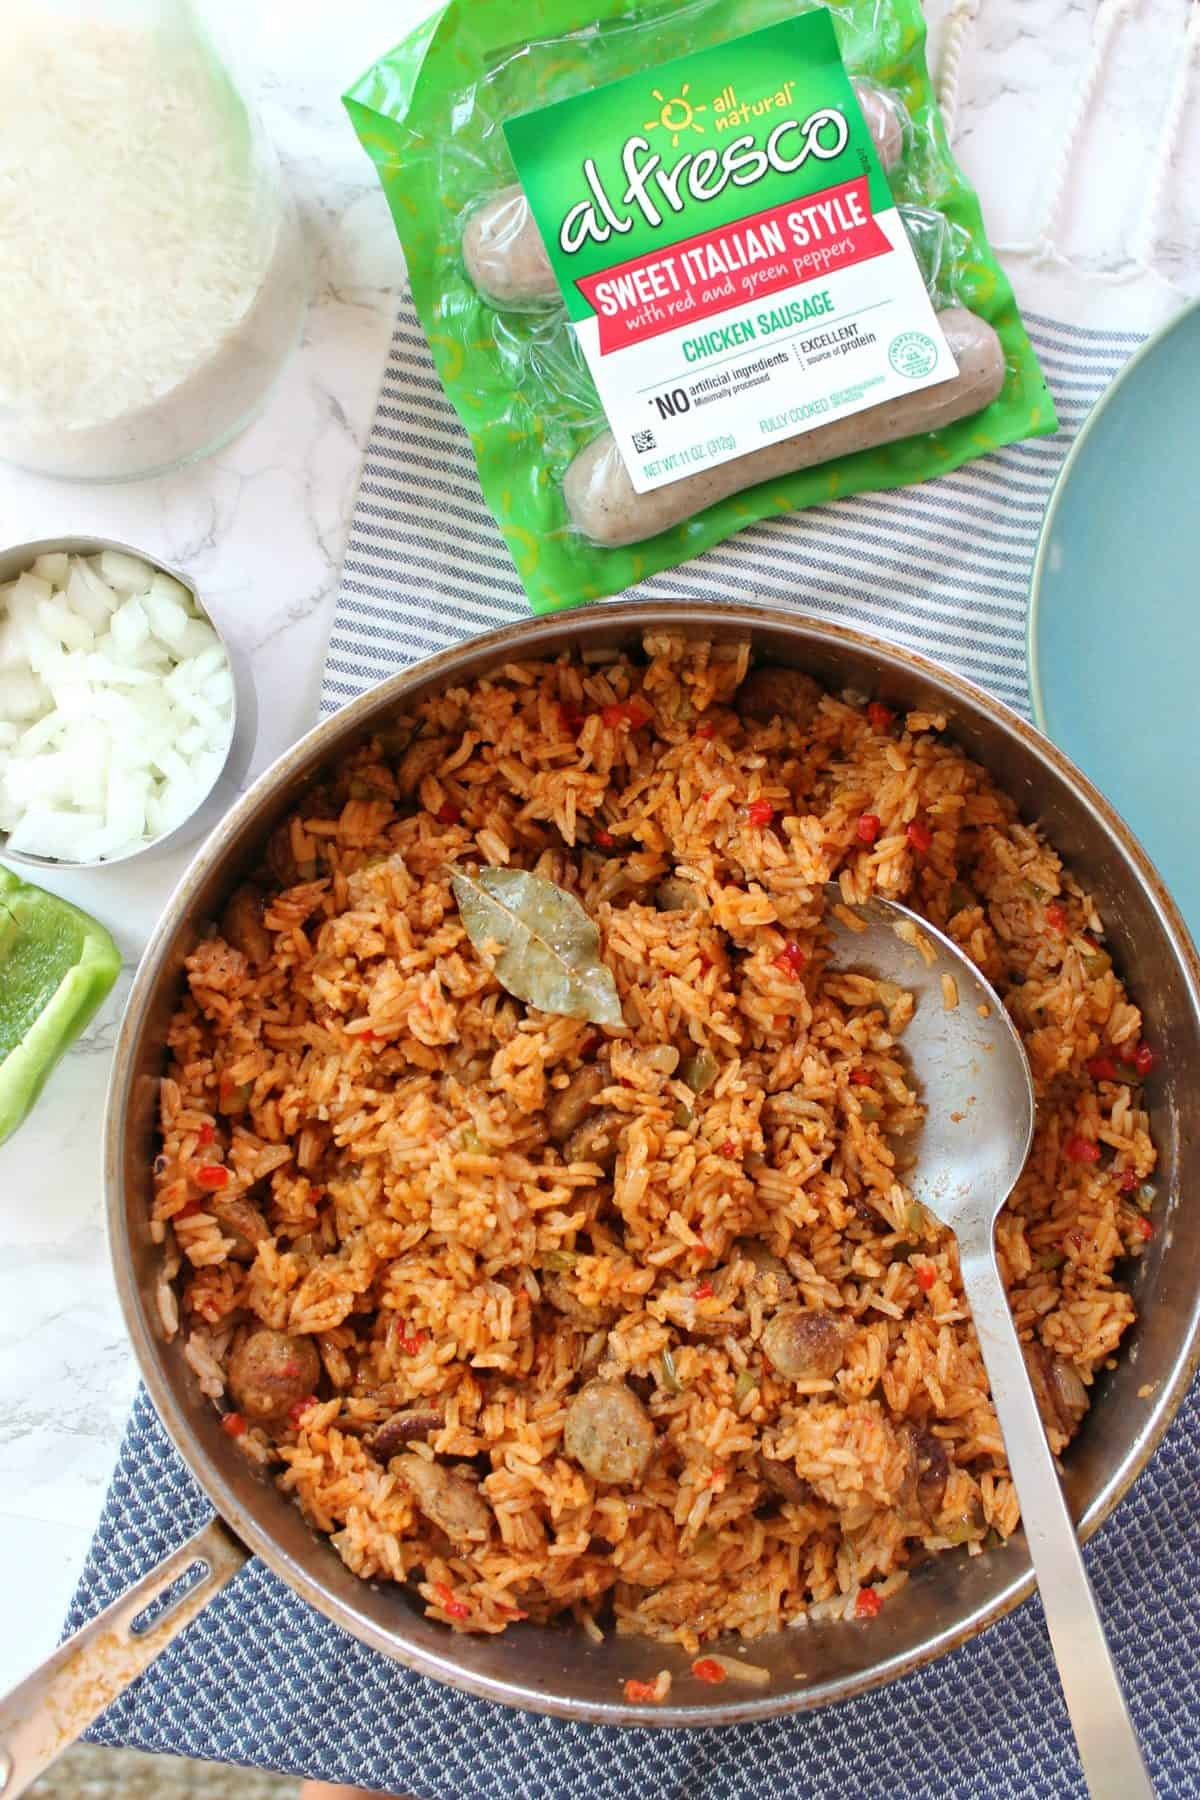 Arroz con salchicha in skillet surrounded by ingredients.